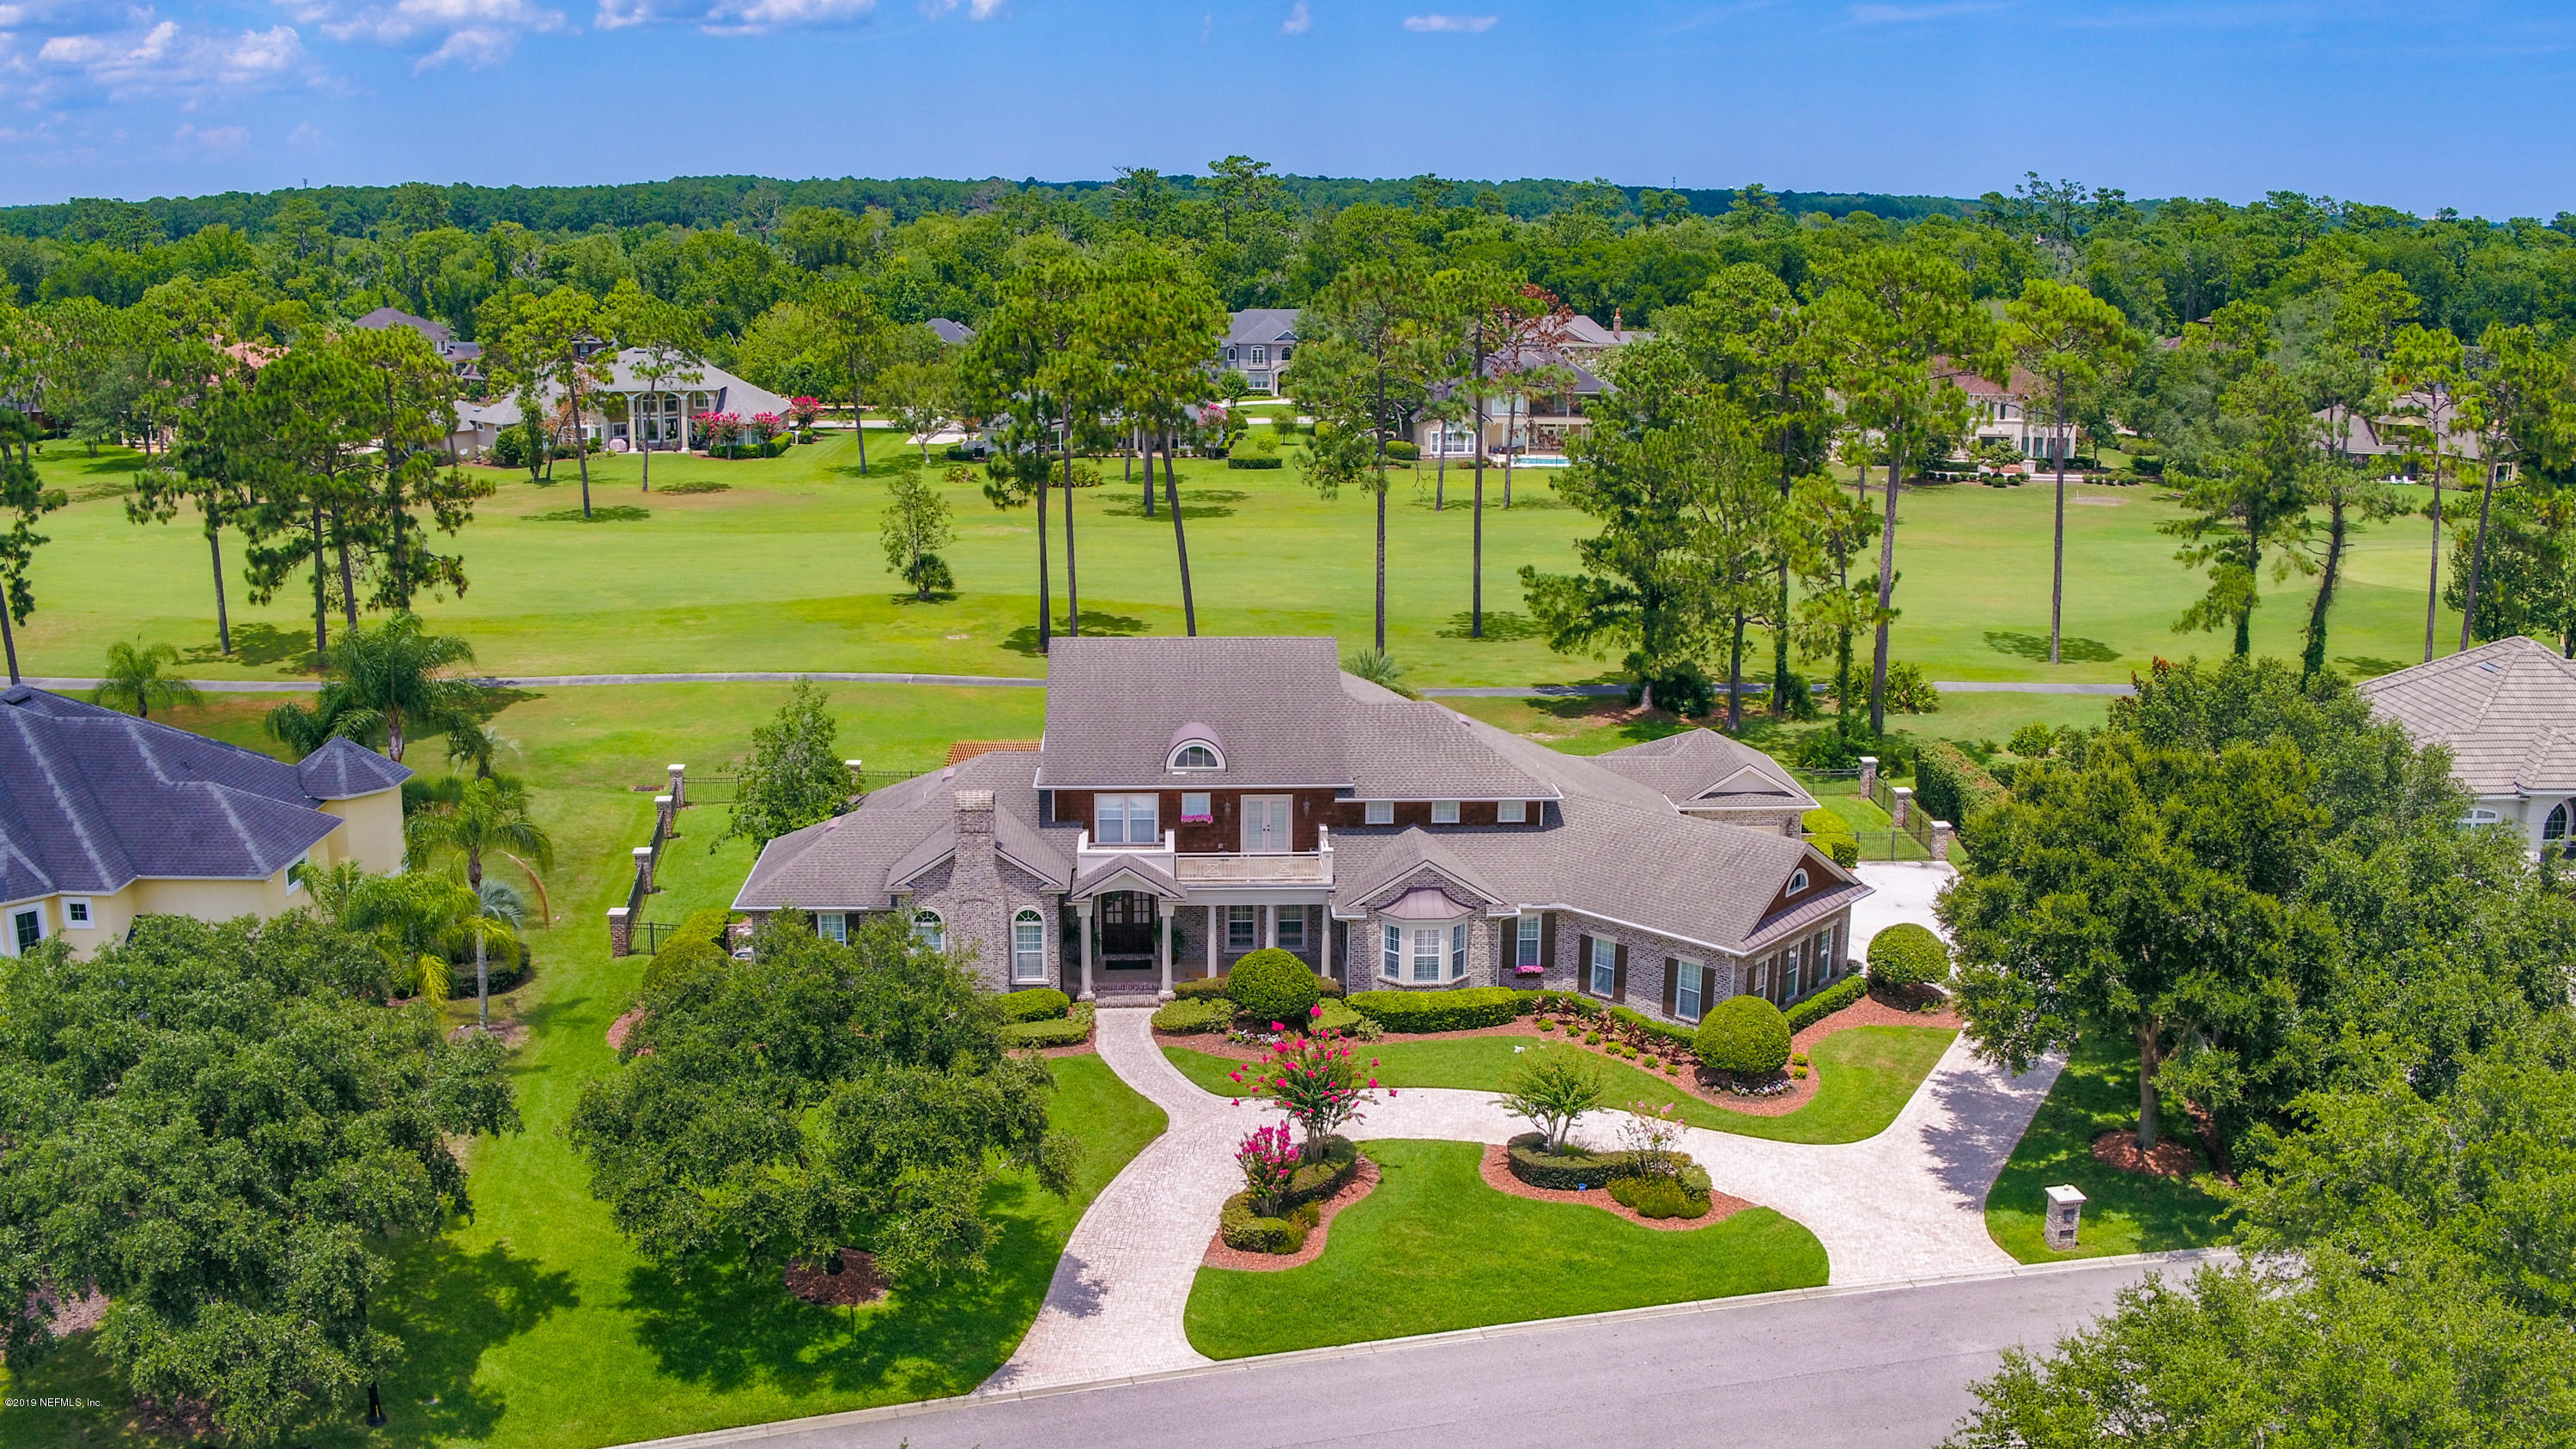 4439 CATHEYS CLUB, JACKSONVILLE, FLORIDA 32224, 5 Bedrooms Bedrooms, ,5 BathroomsBathrooms,Residential - single family,For sale,CATHEYS CLUB,1004748